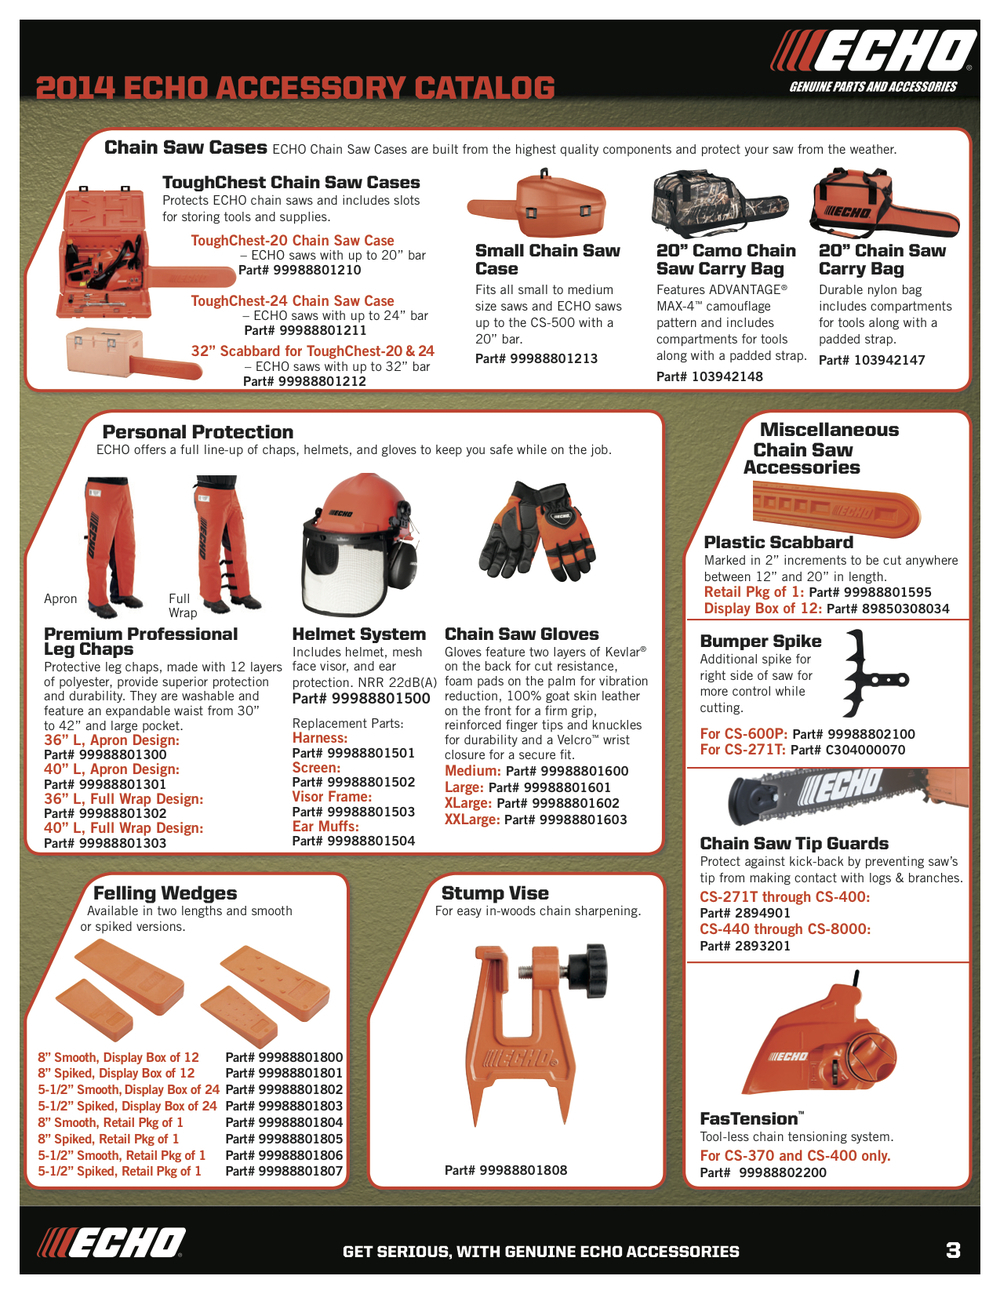 Chainsaw Accessories 2014.jpg